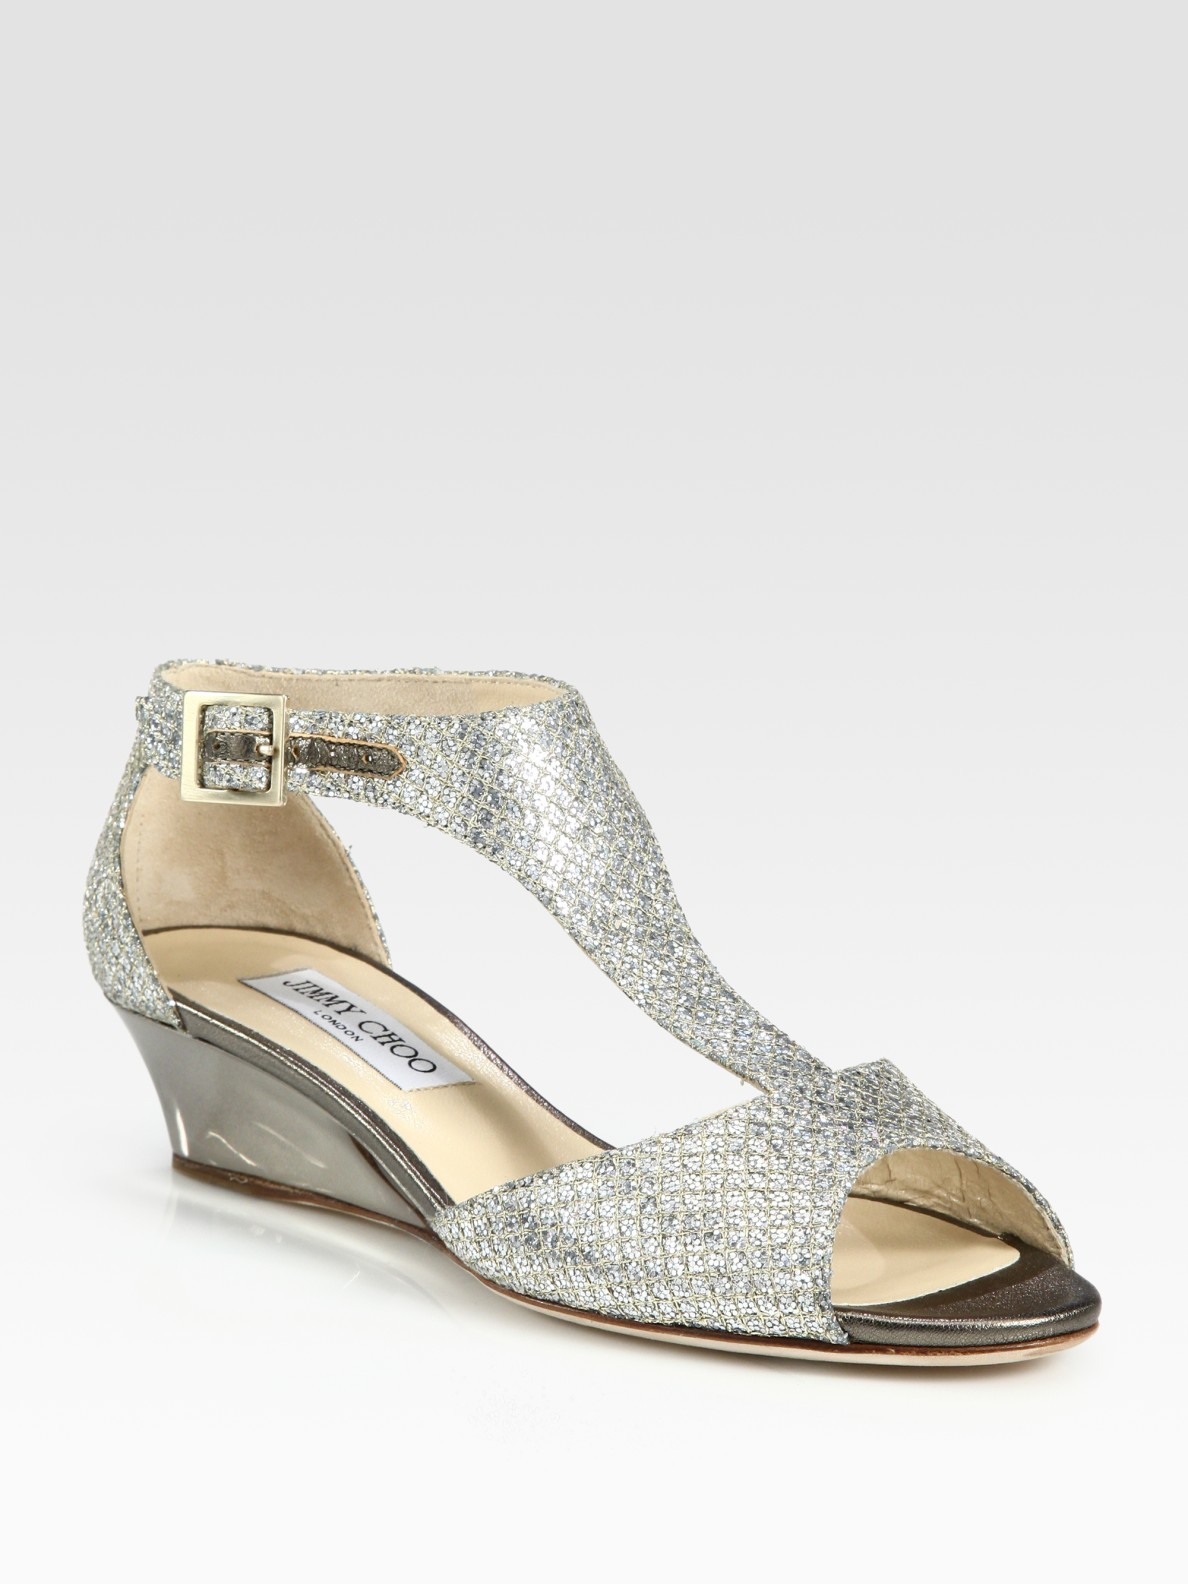 jimmy choo treat glitter tstrap wedge sandals champagne